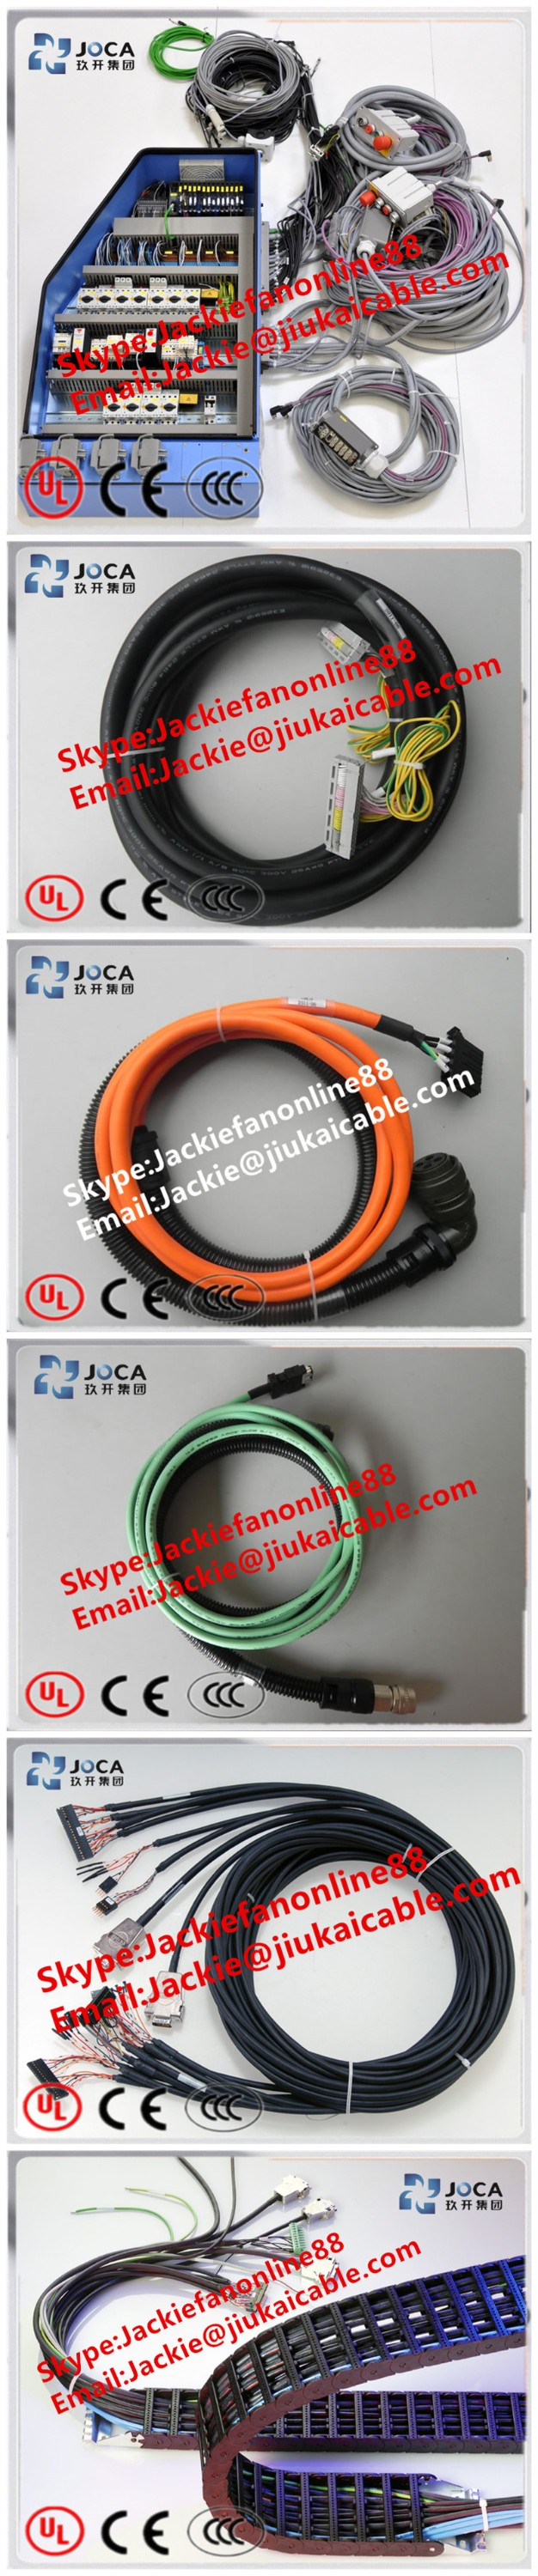 medium resolution of fire resistance cable 4 sqmm can bus cable j1939 11 sae shielded drain